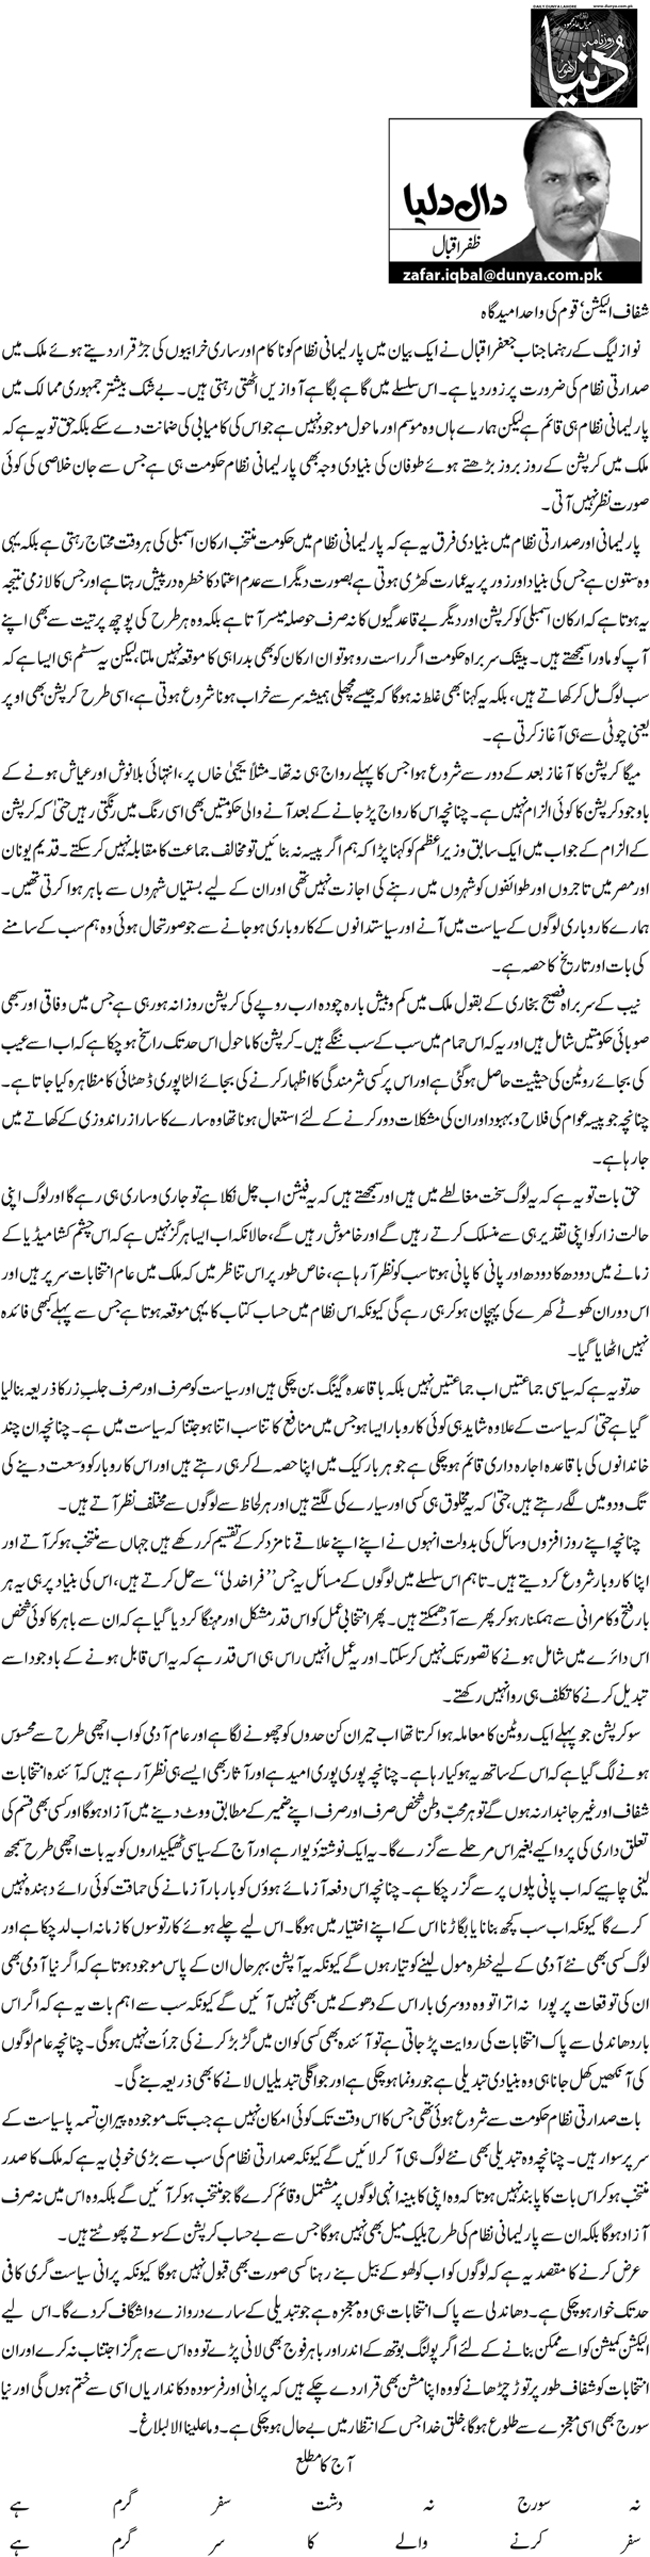 Shafaf election' qaum ki wahid umeed gah - Zafar Iqbal